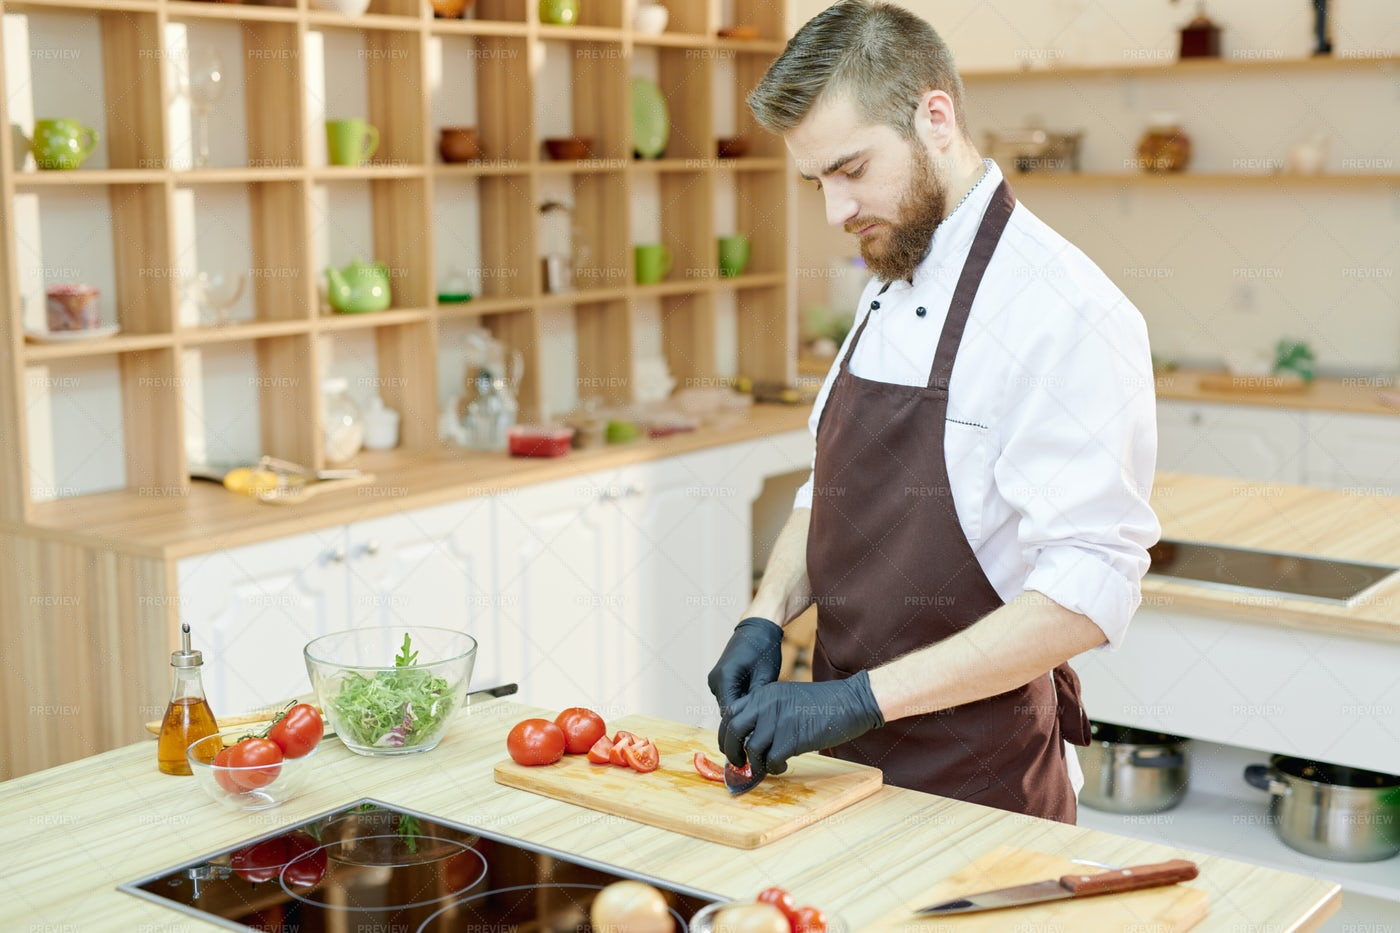 Professional Chef Cooking Salad  In...: Stock Photos